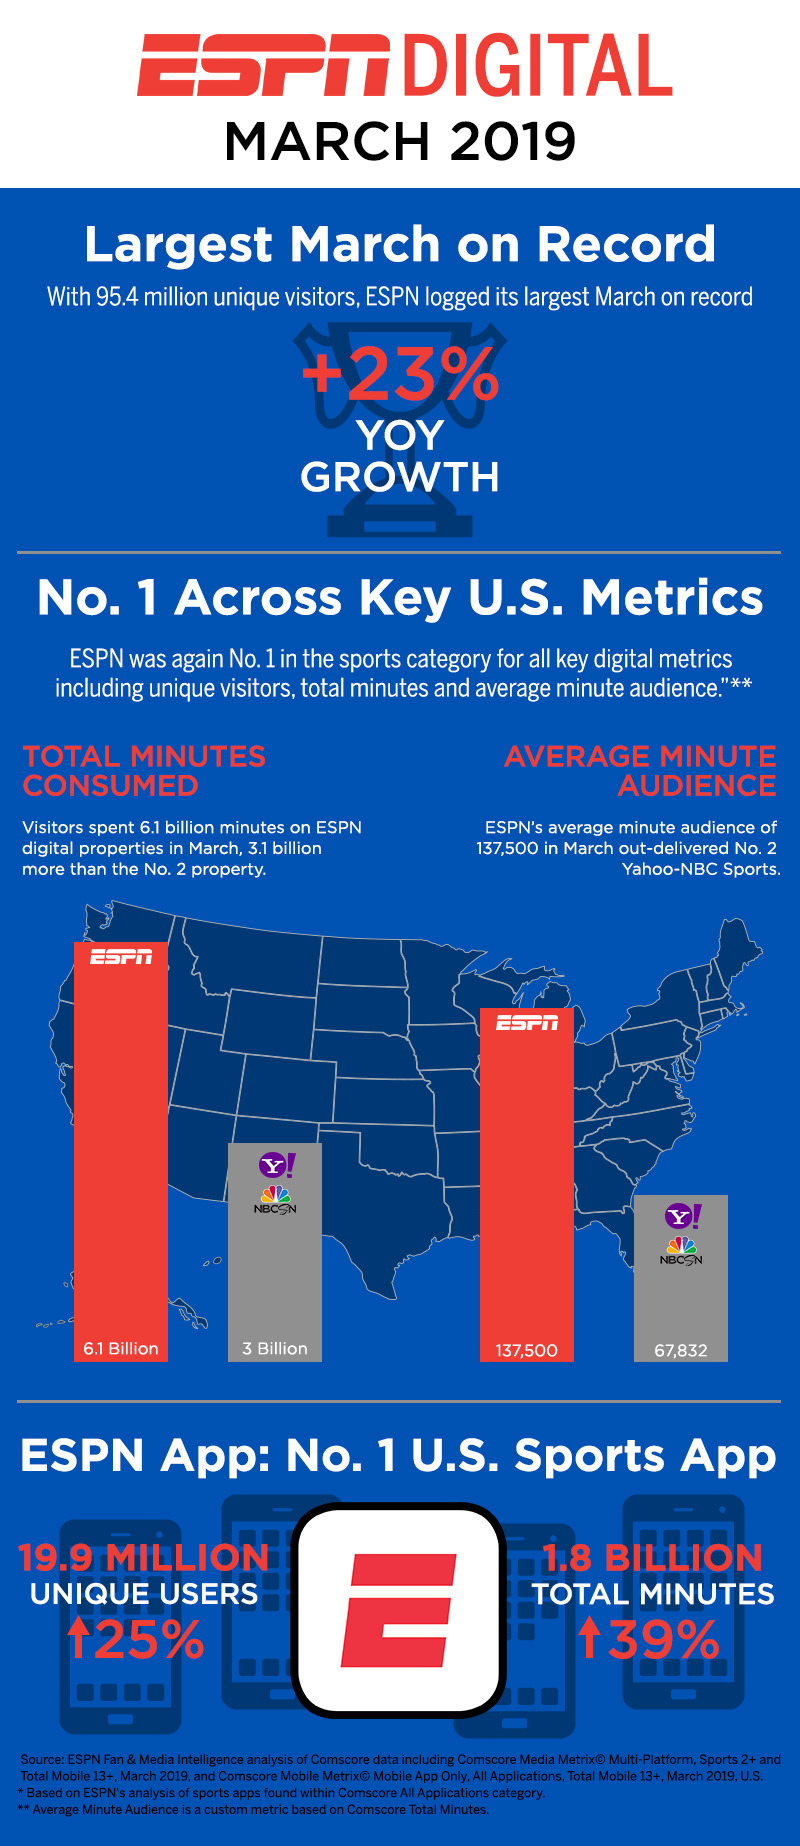 Espn Digital Posts Best March Ever Remains No 1 Us Digital Sports Property